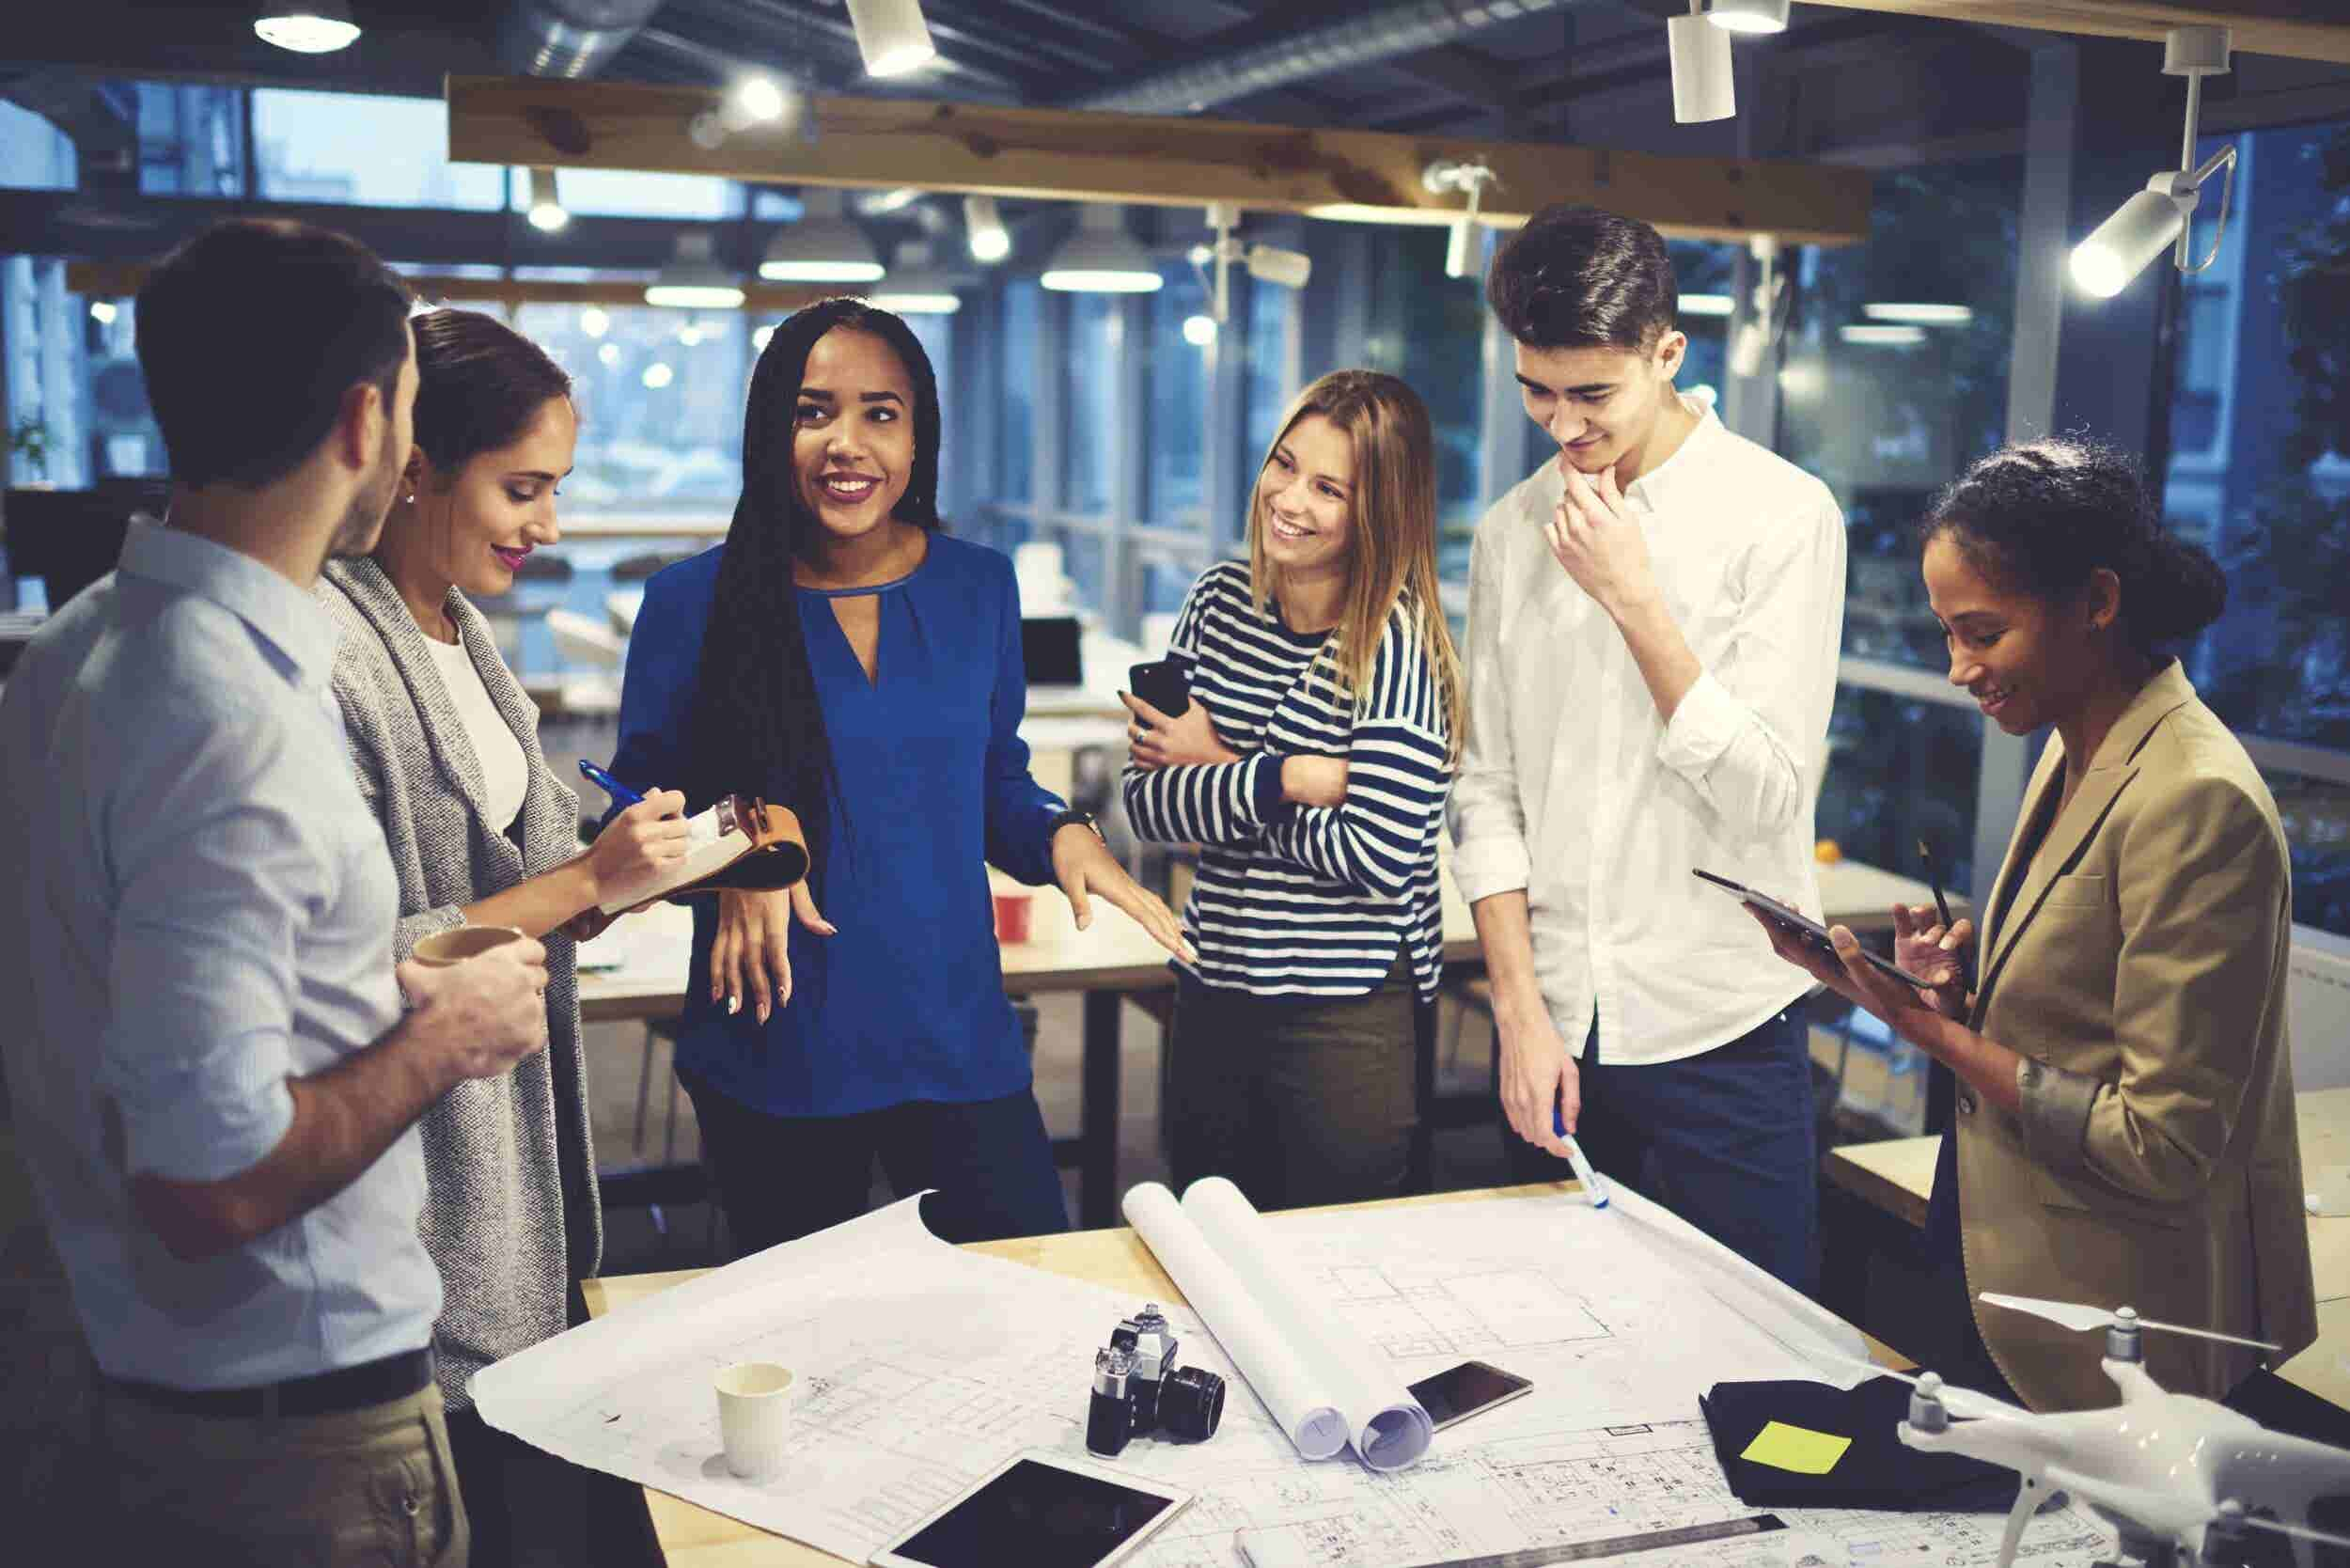 How to Attract and Retain Top Talent